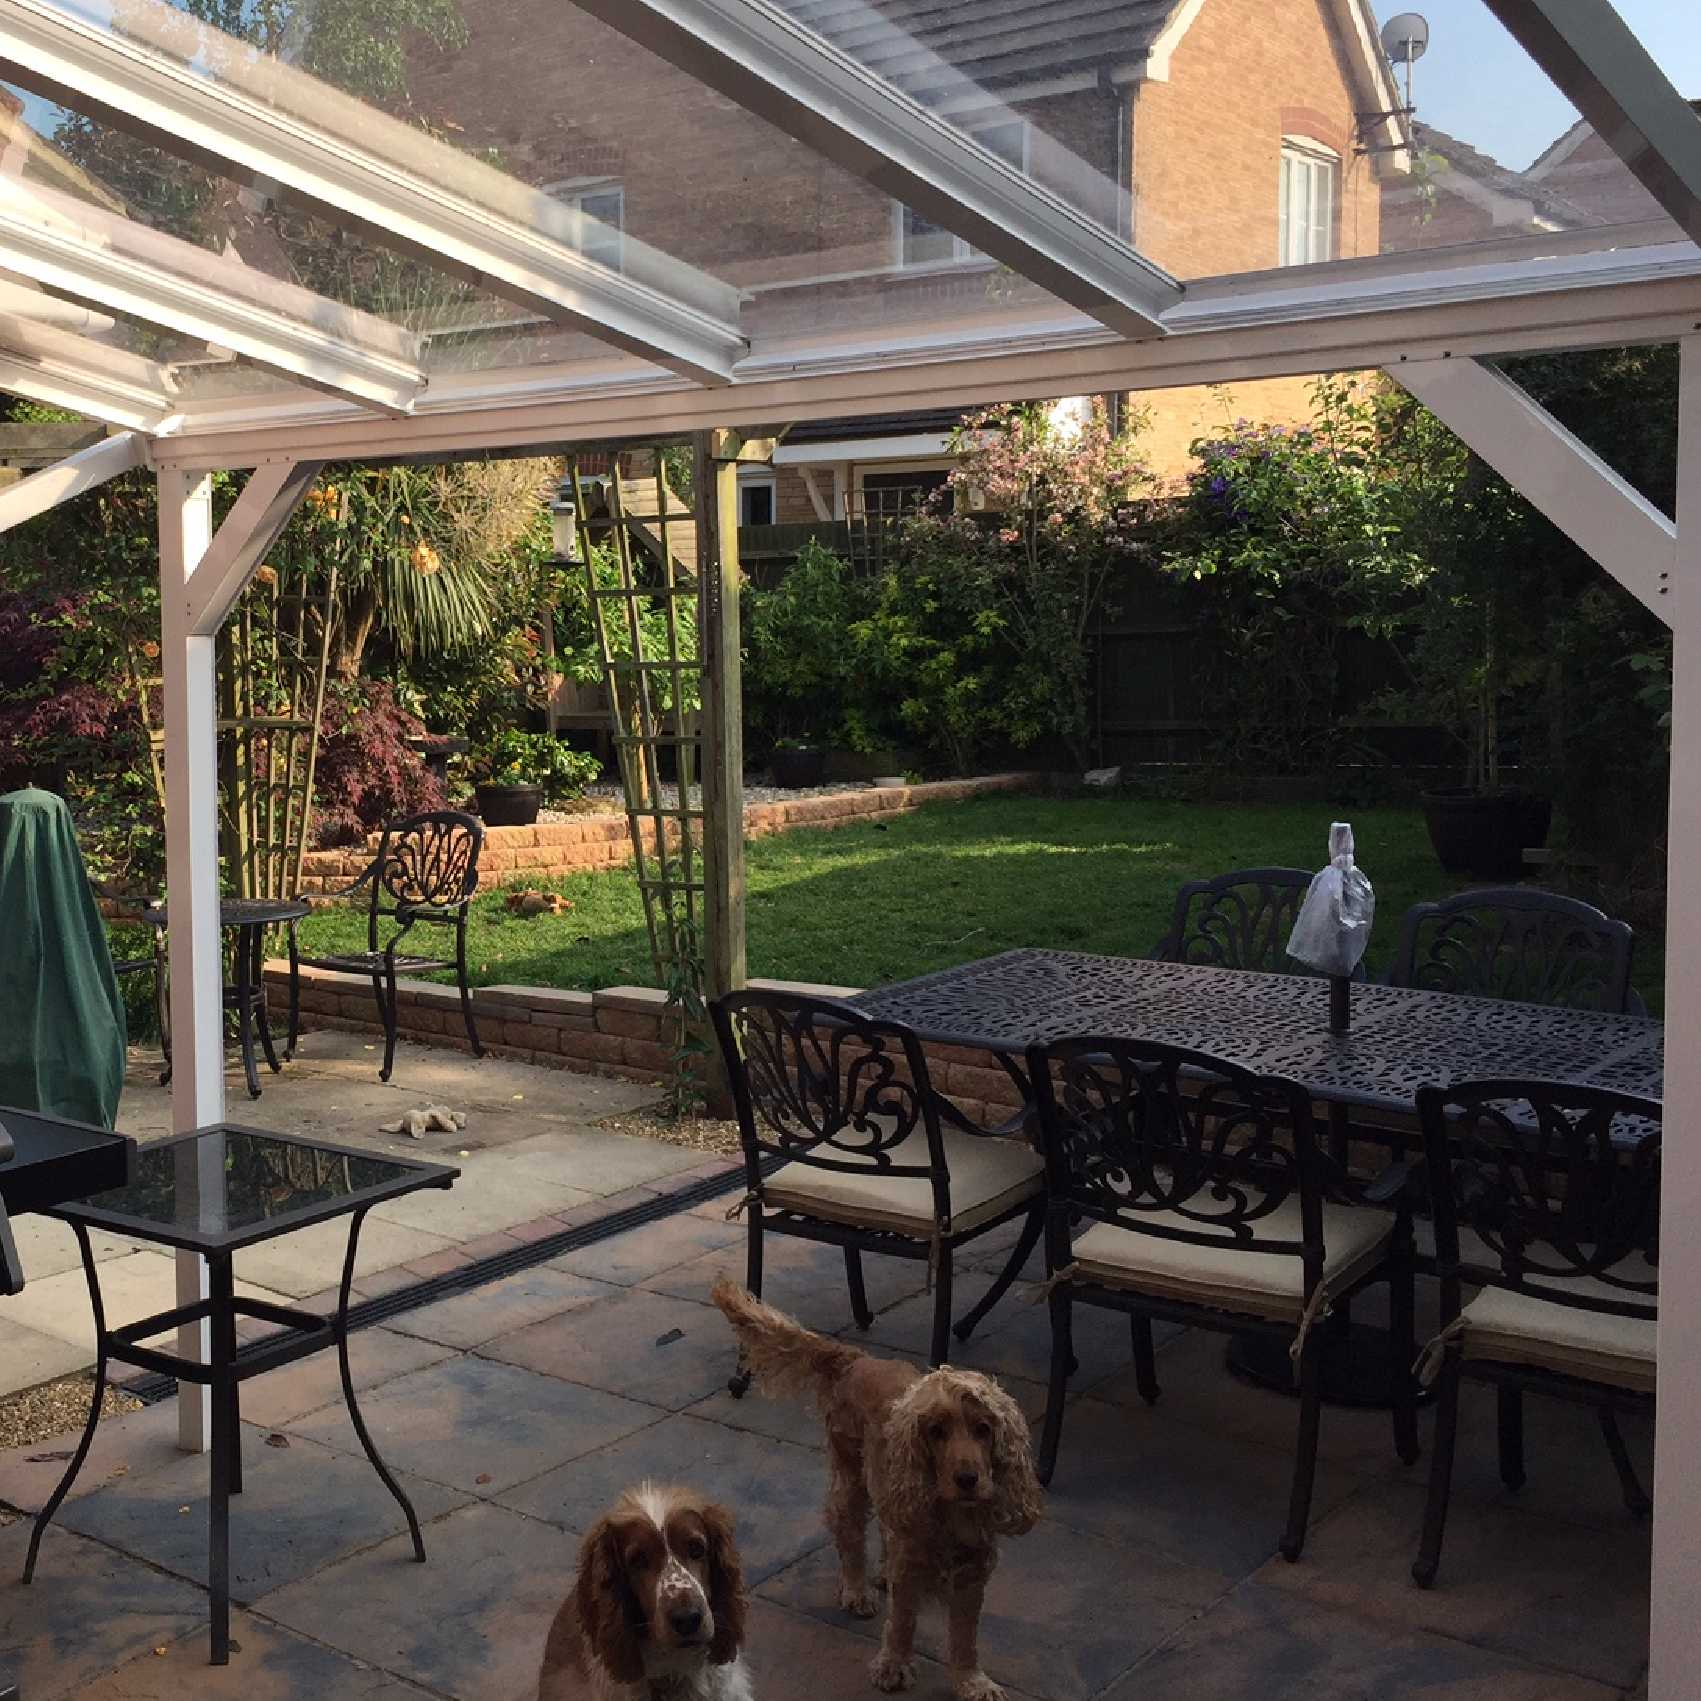 Affordable Omega Smart Lean-To Canopy UNGLAZED for 6mm Glazing - 8.4m (W) x 3.0m (P), (4) Supporting Posts